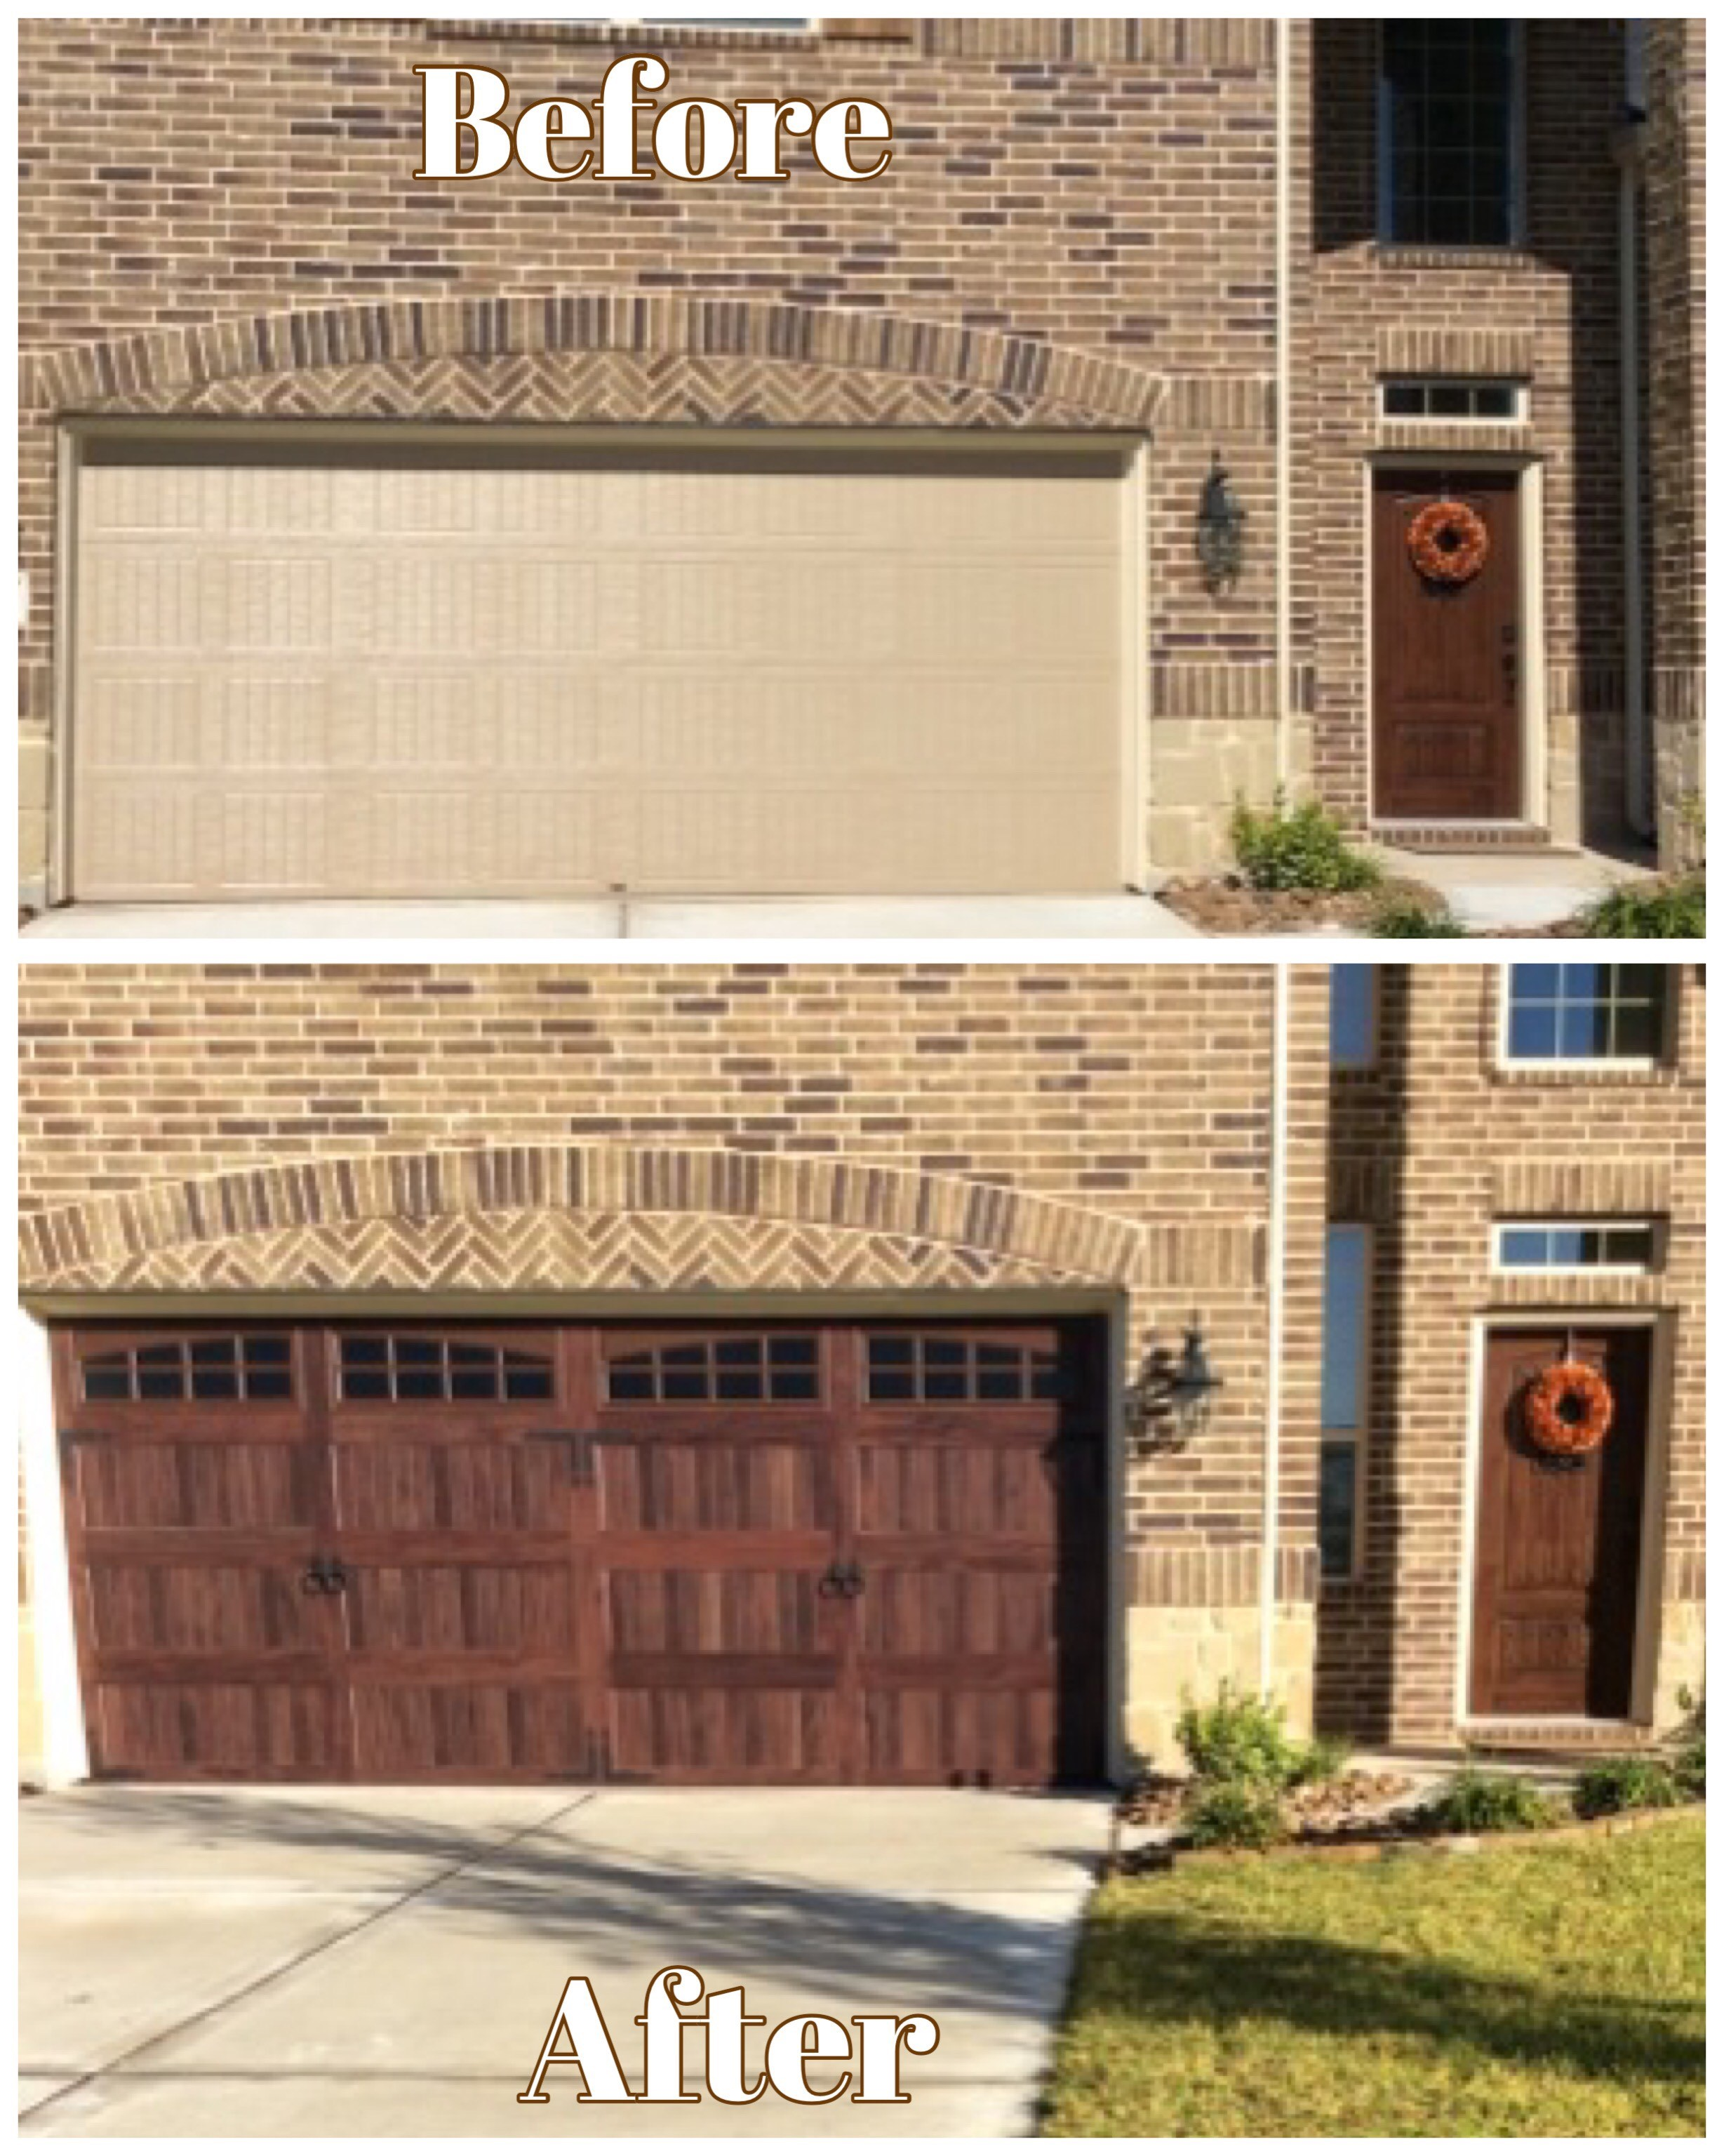 Texas Best Garage Door Co. image 6